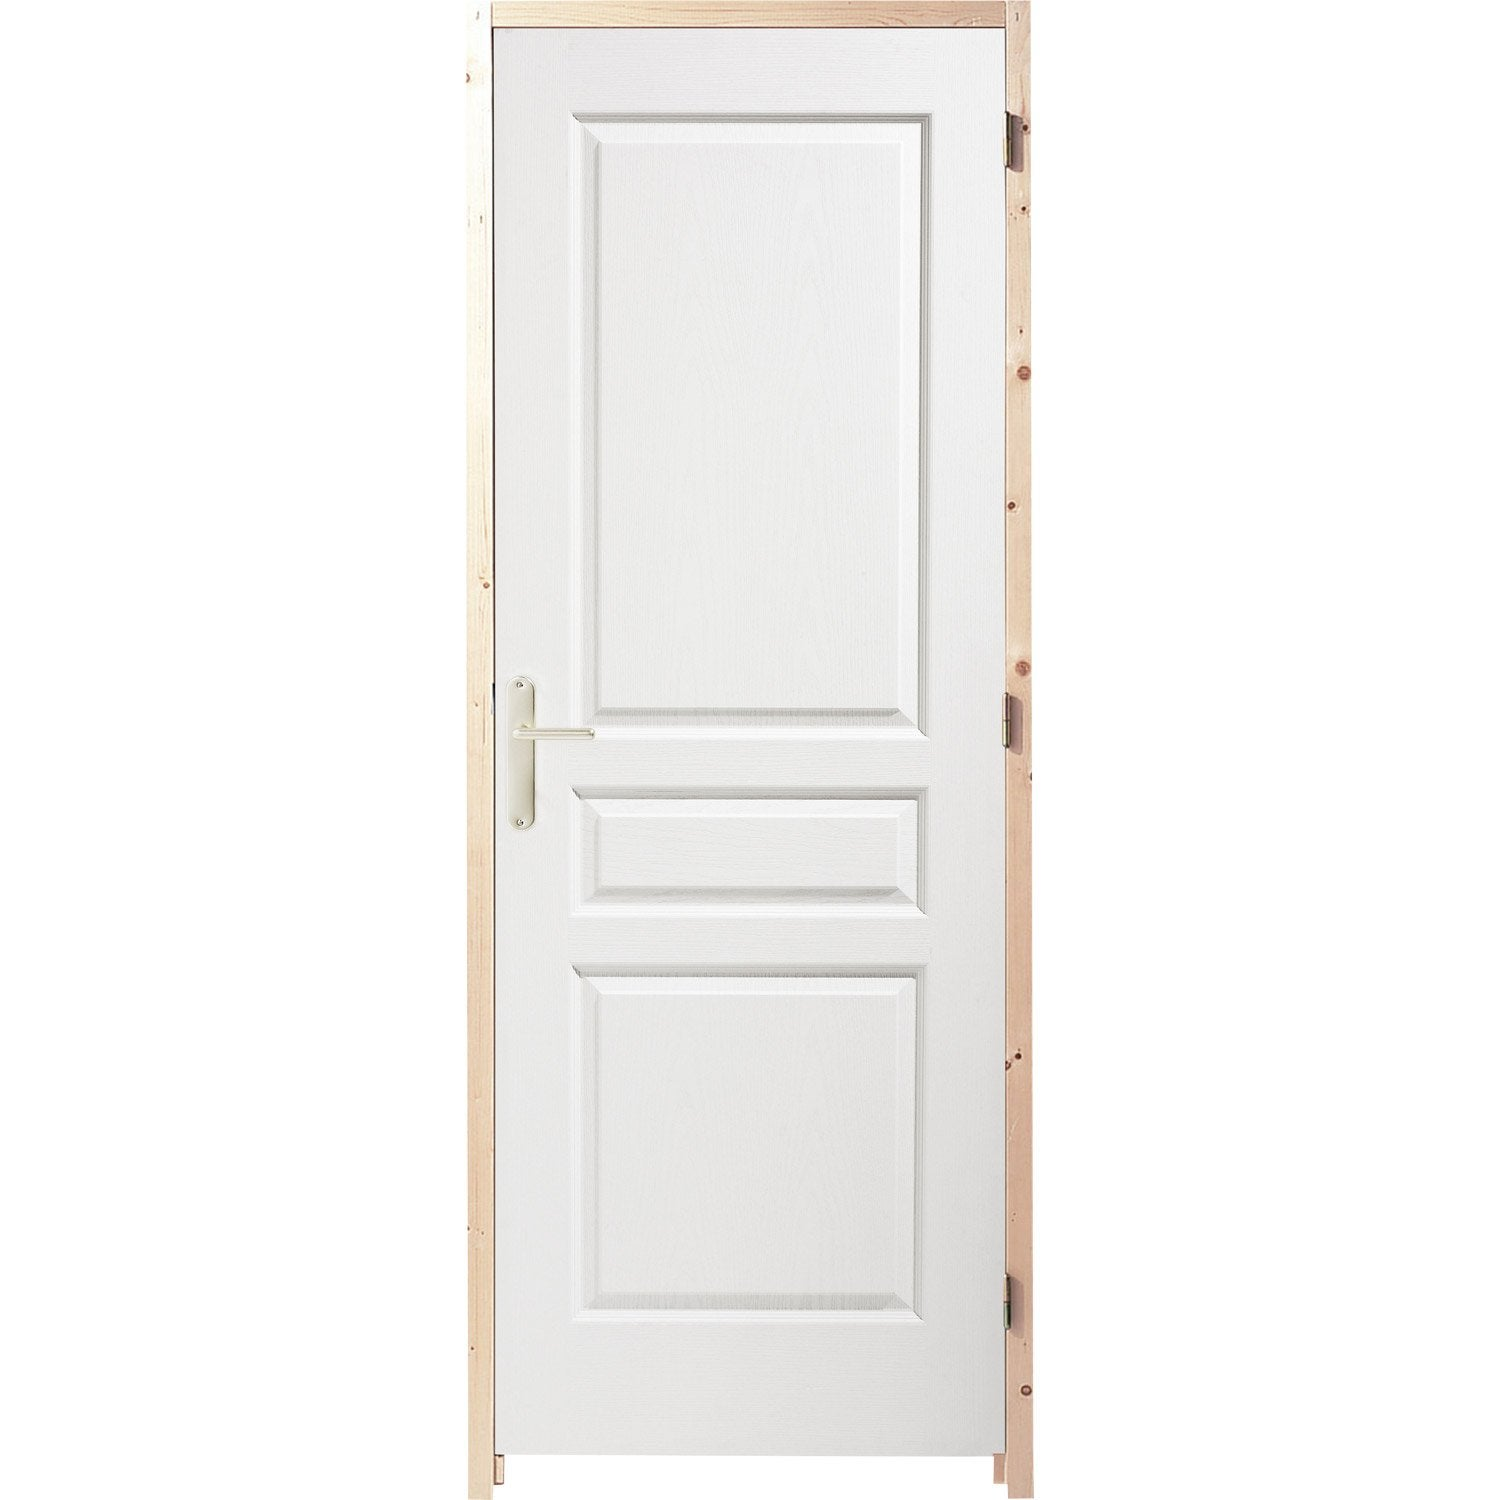 Bloc porte postform postform x cm poussant droit leroy merlin for Porte interieur renovation